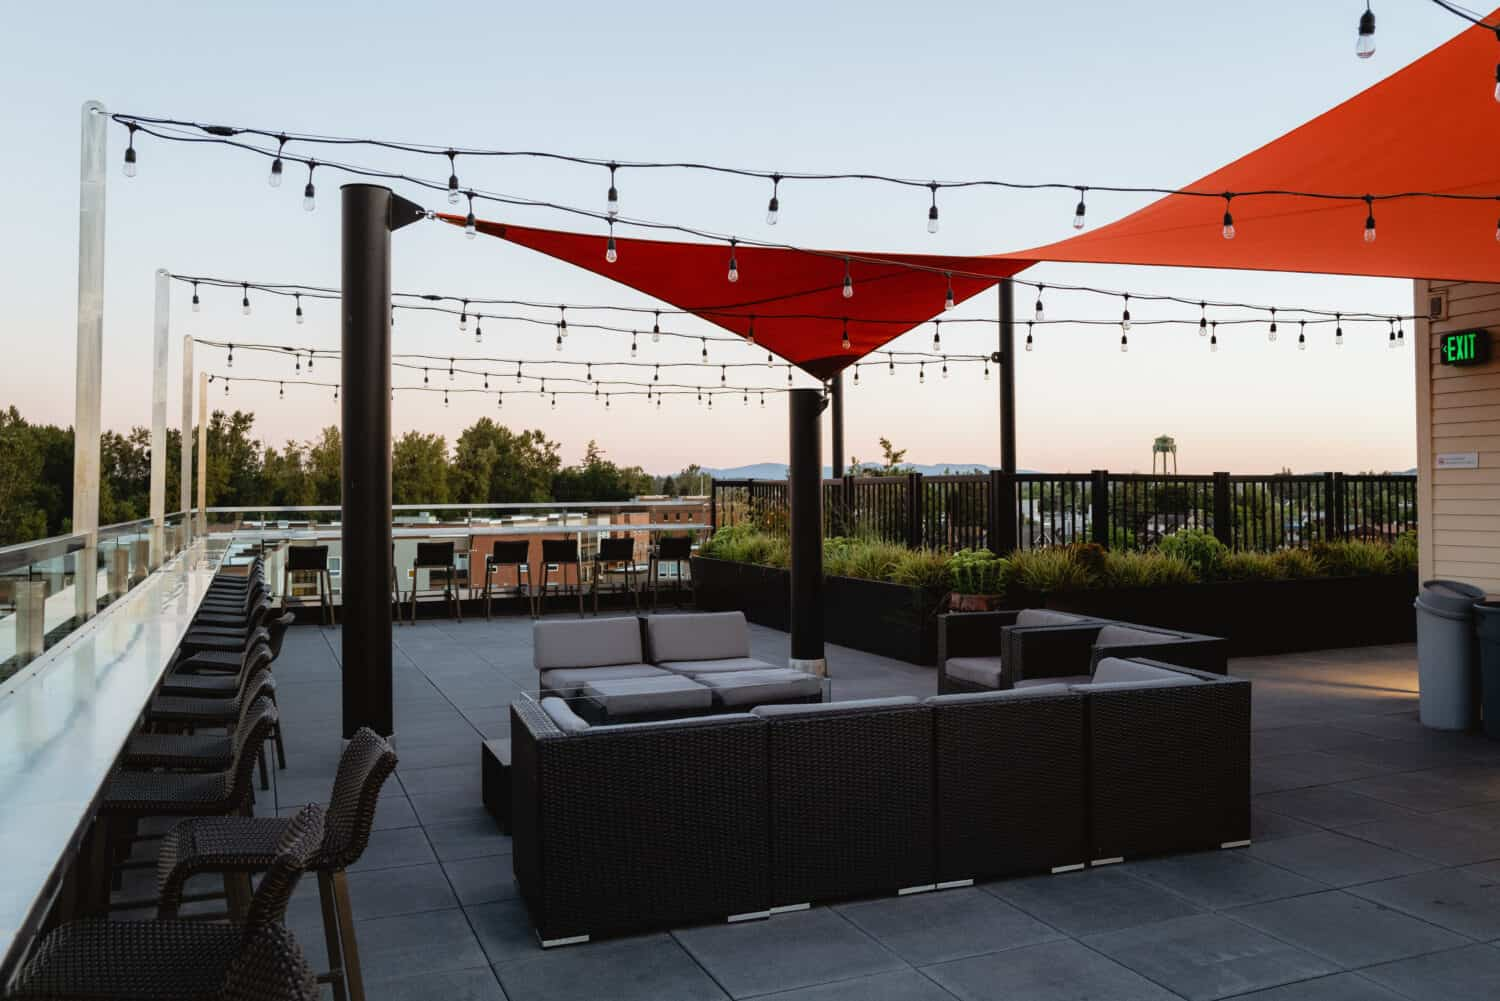 The Independence Hotel Rooftop Deck